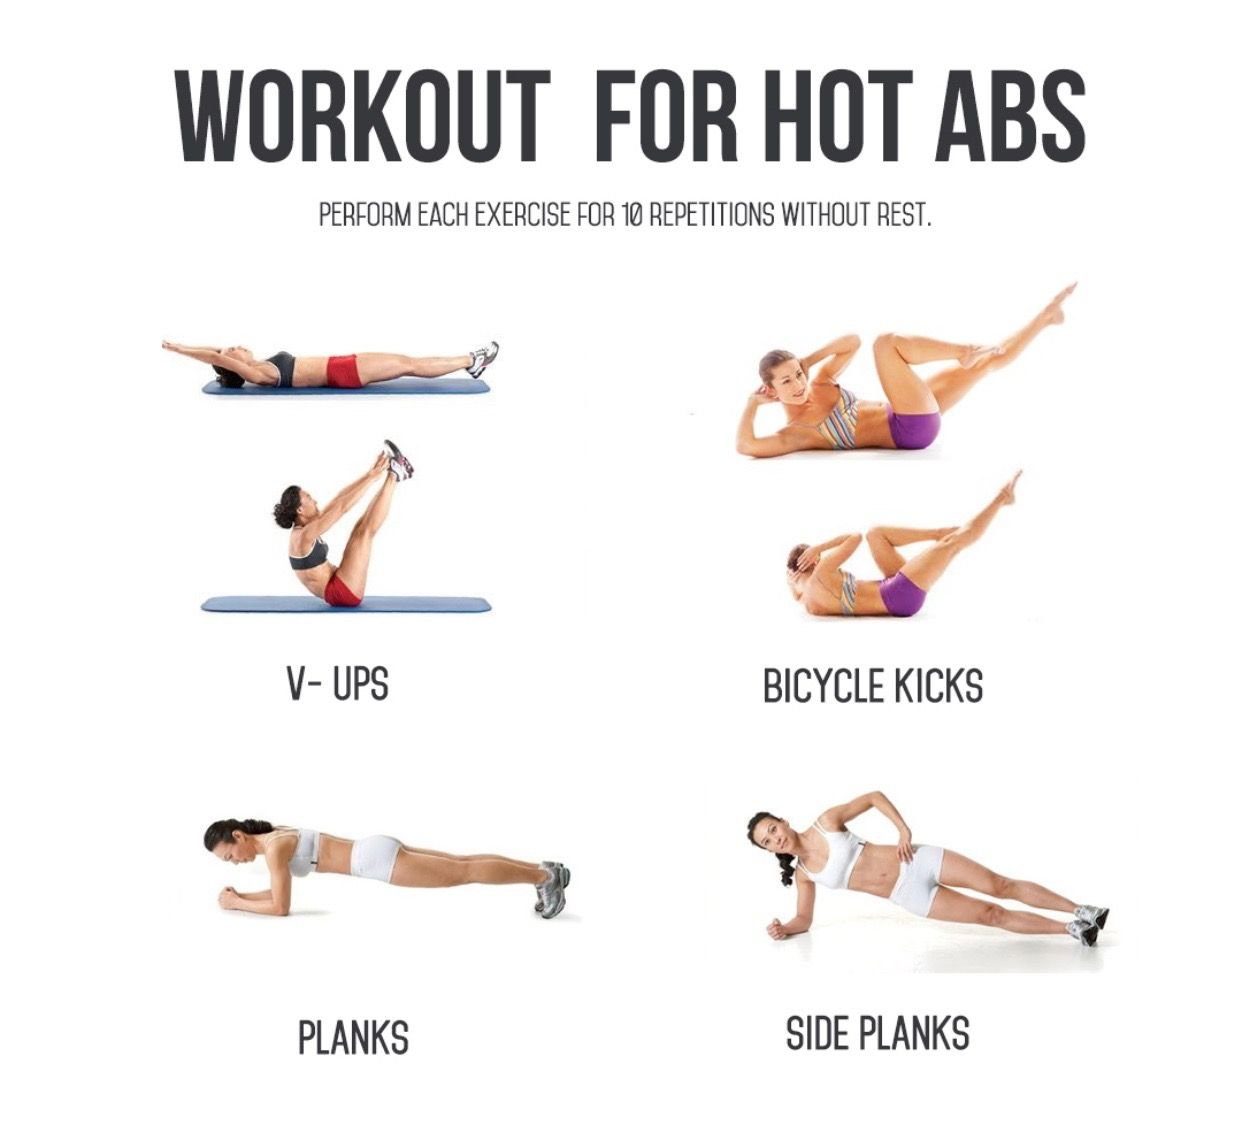 Pin By Kat On Working Out With Images Bicycle Kick Hot